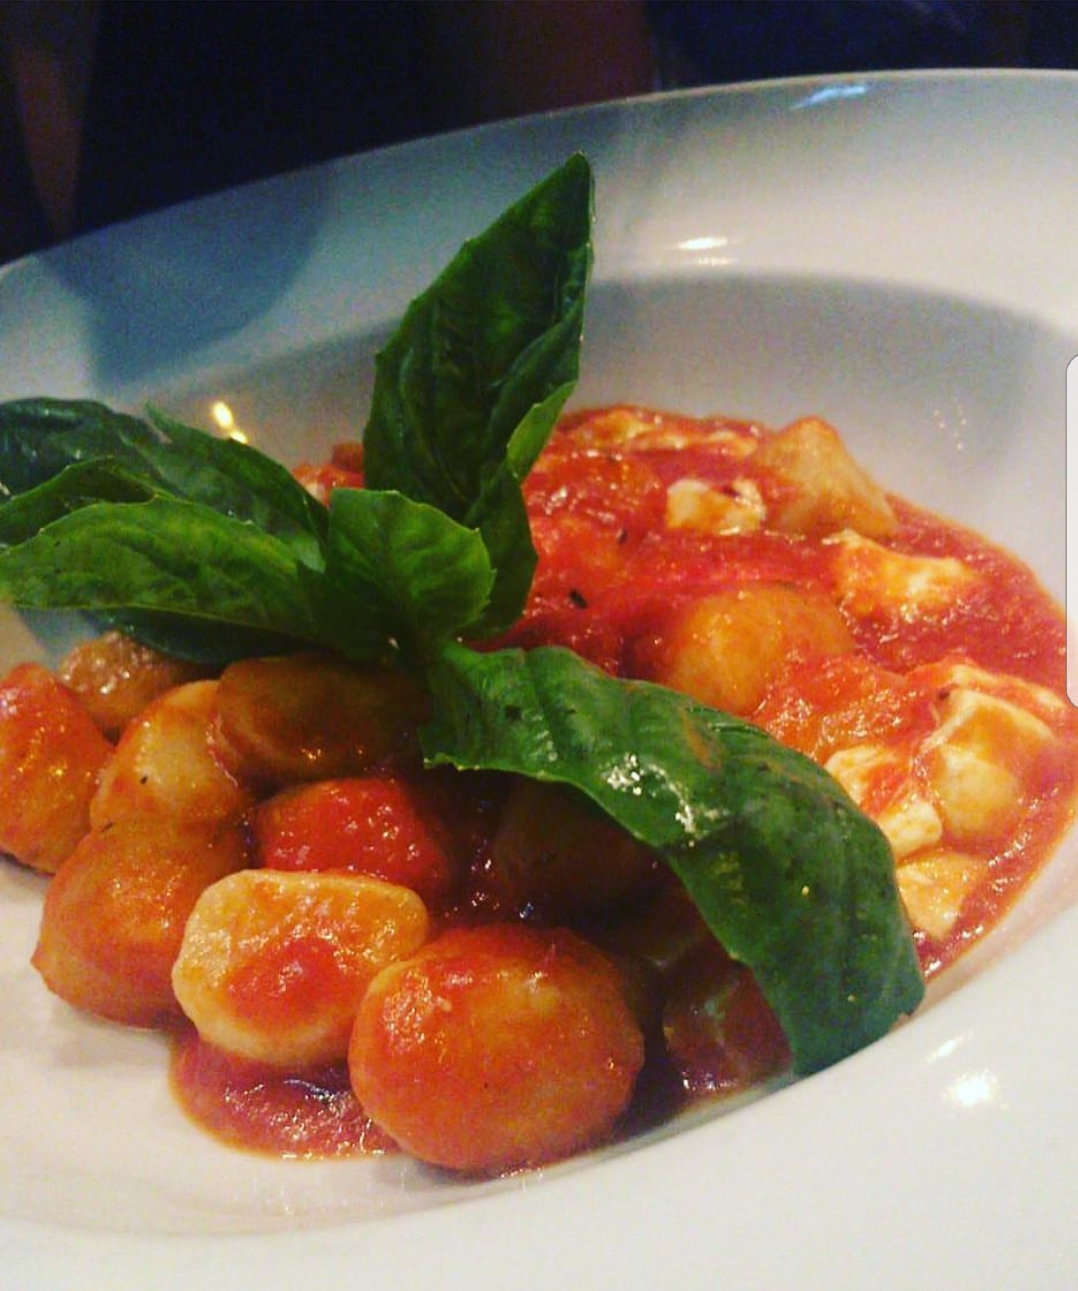 Gnocchi Finished Dish with Bolognese Sauce